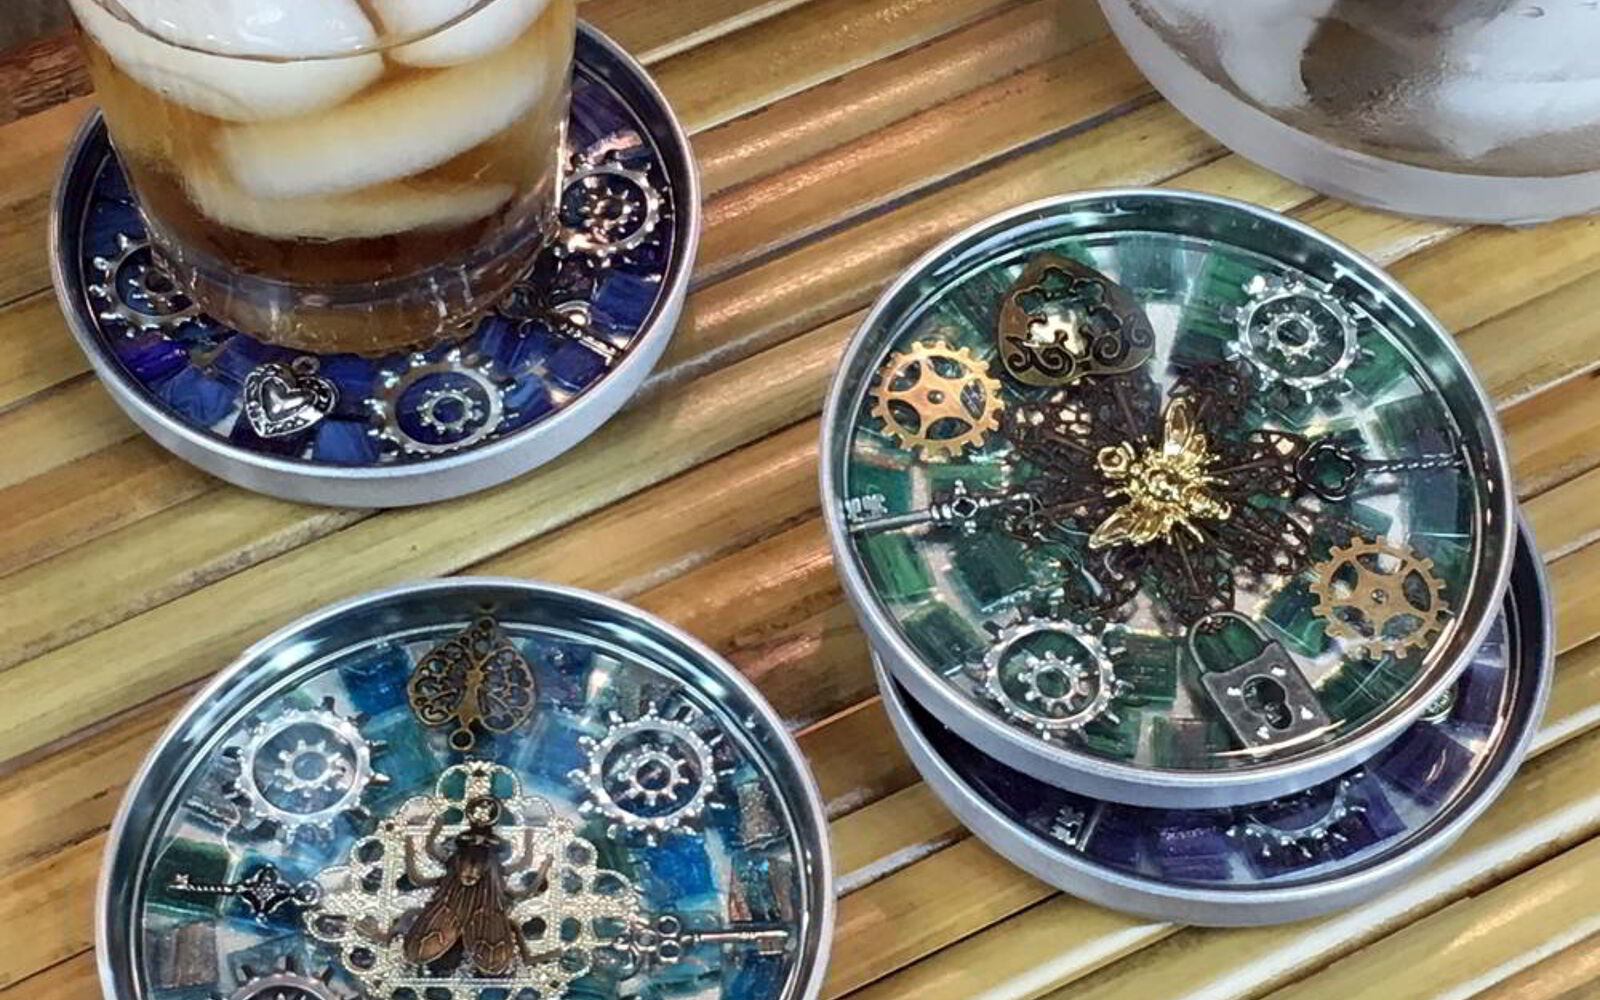 s 31 update ideas to make your kitchen look fabulous, Create some super funky steampunk coasters